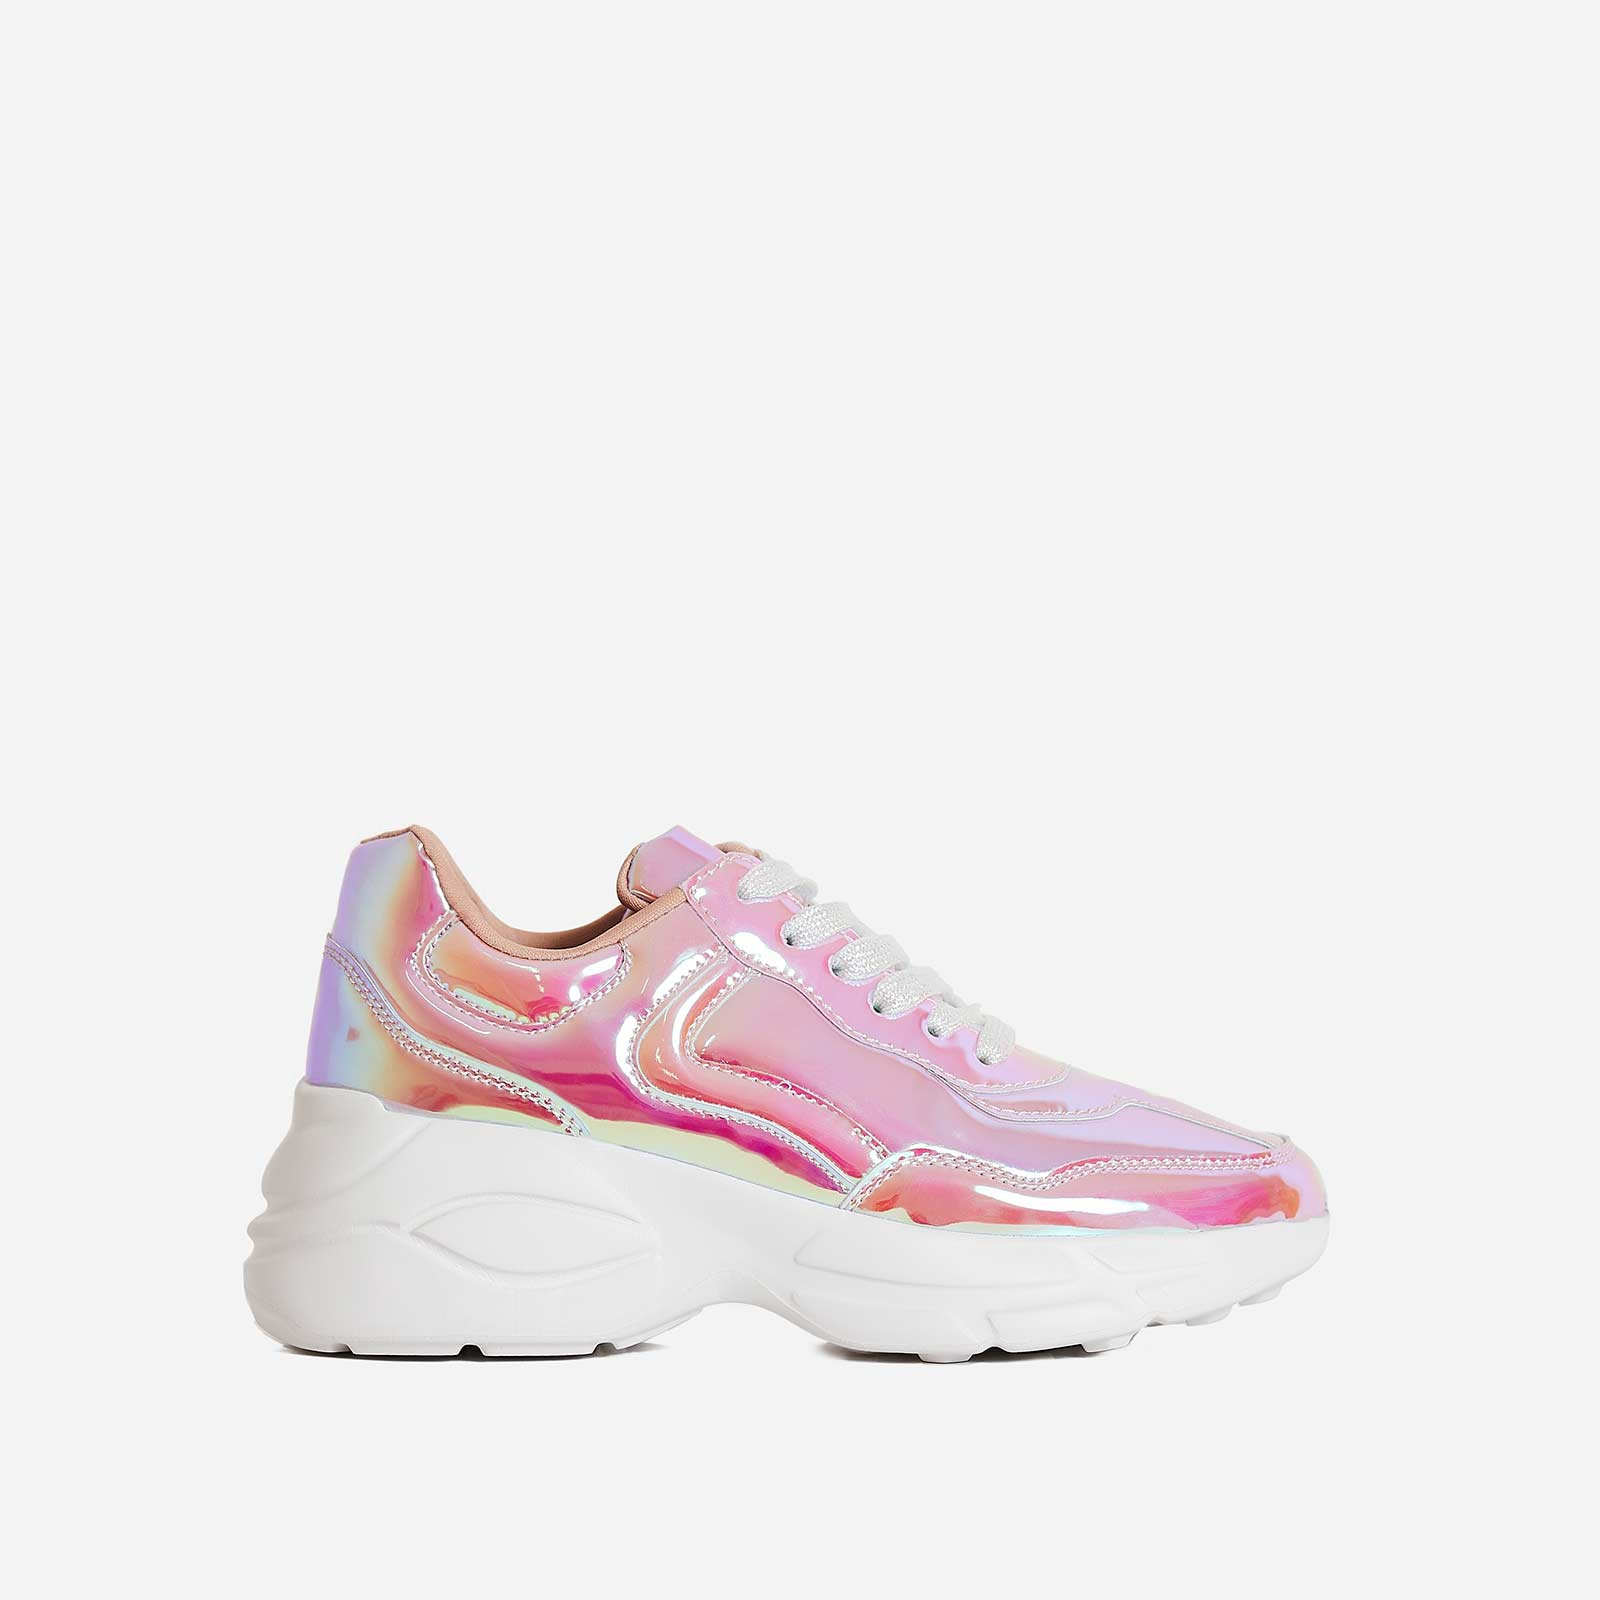 Limitless Chunky Trainer In Metallic Pink Patent